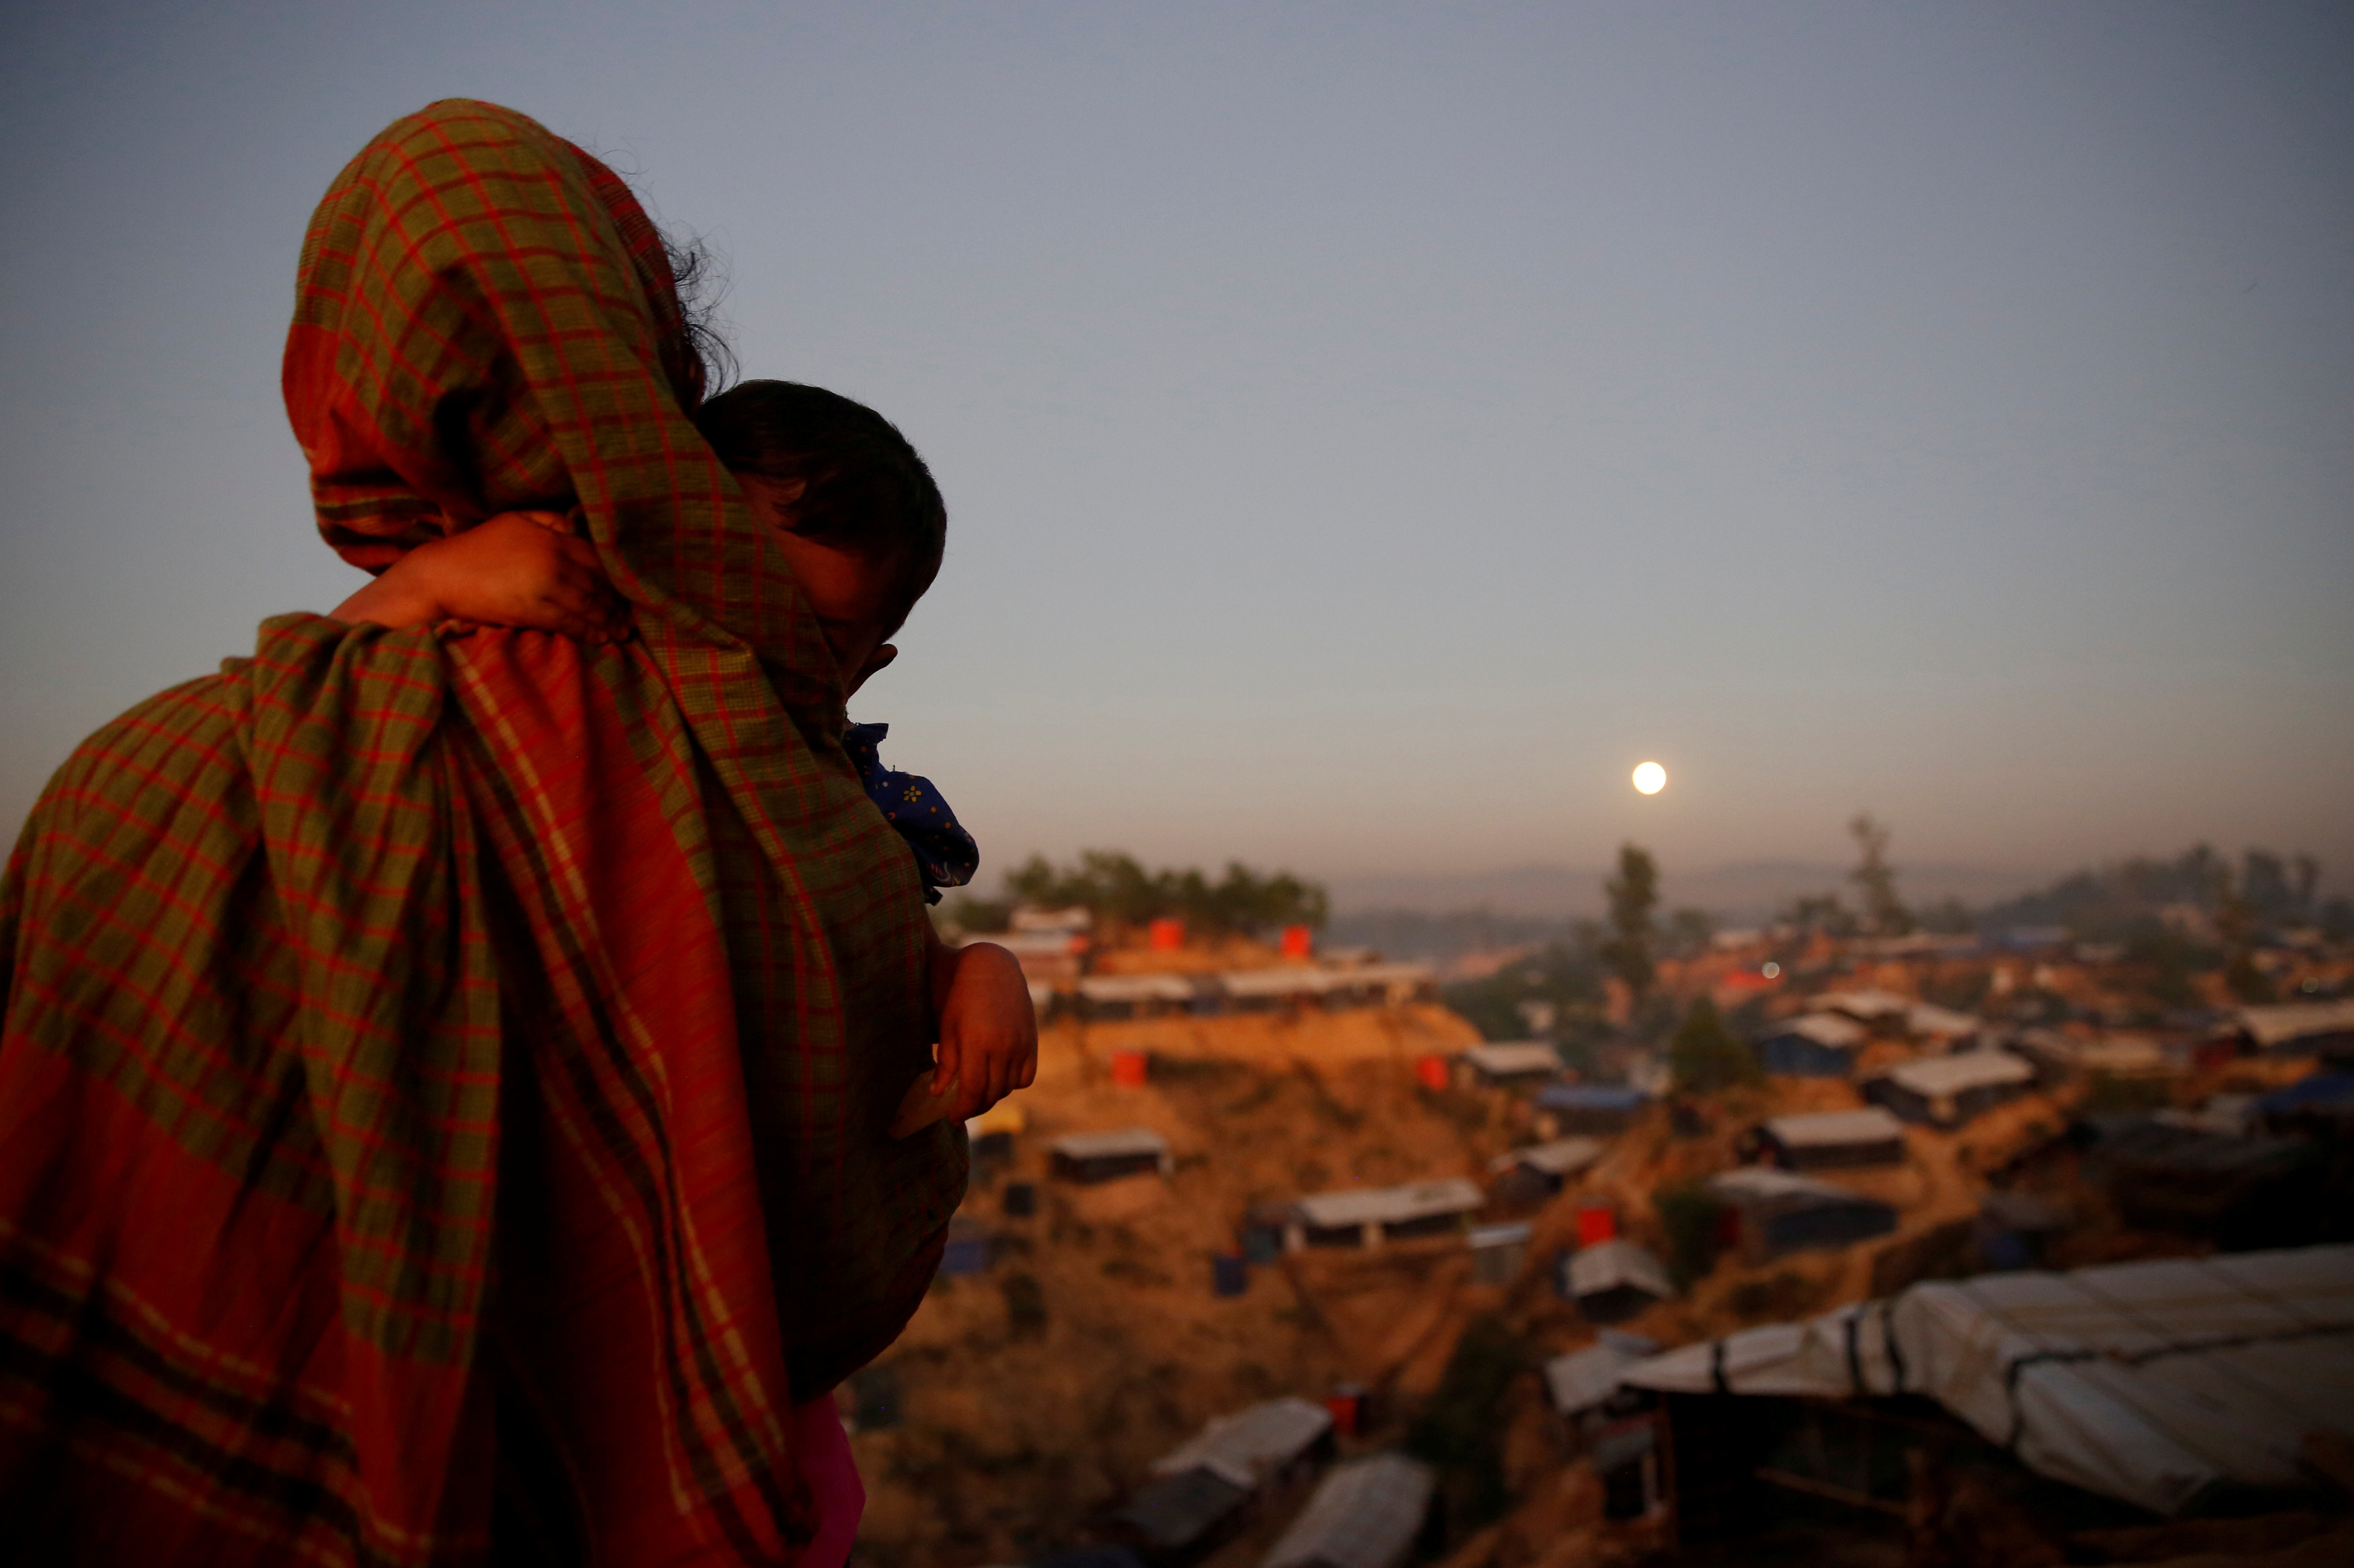 Rohingya refugees still fleeing from Myanmar to Bangladesh: UNHCR